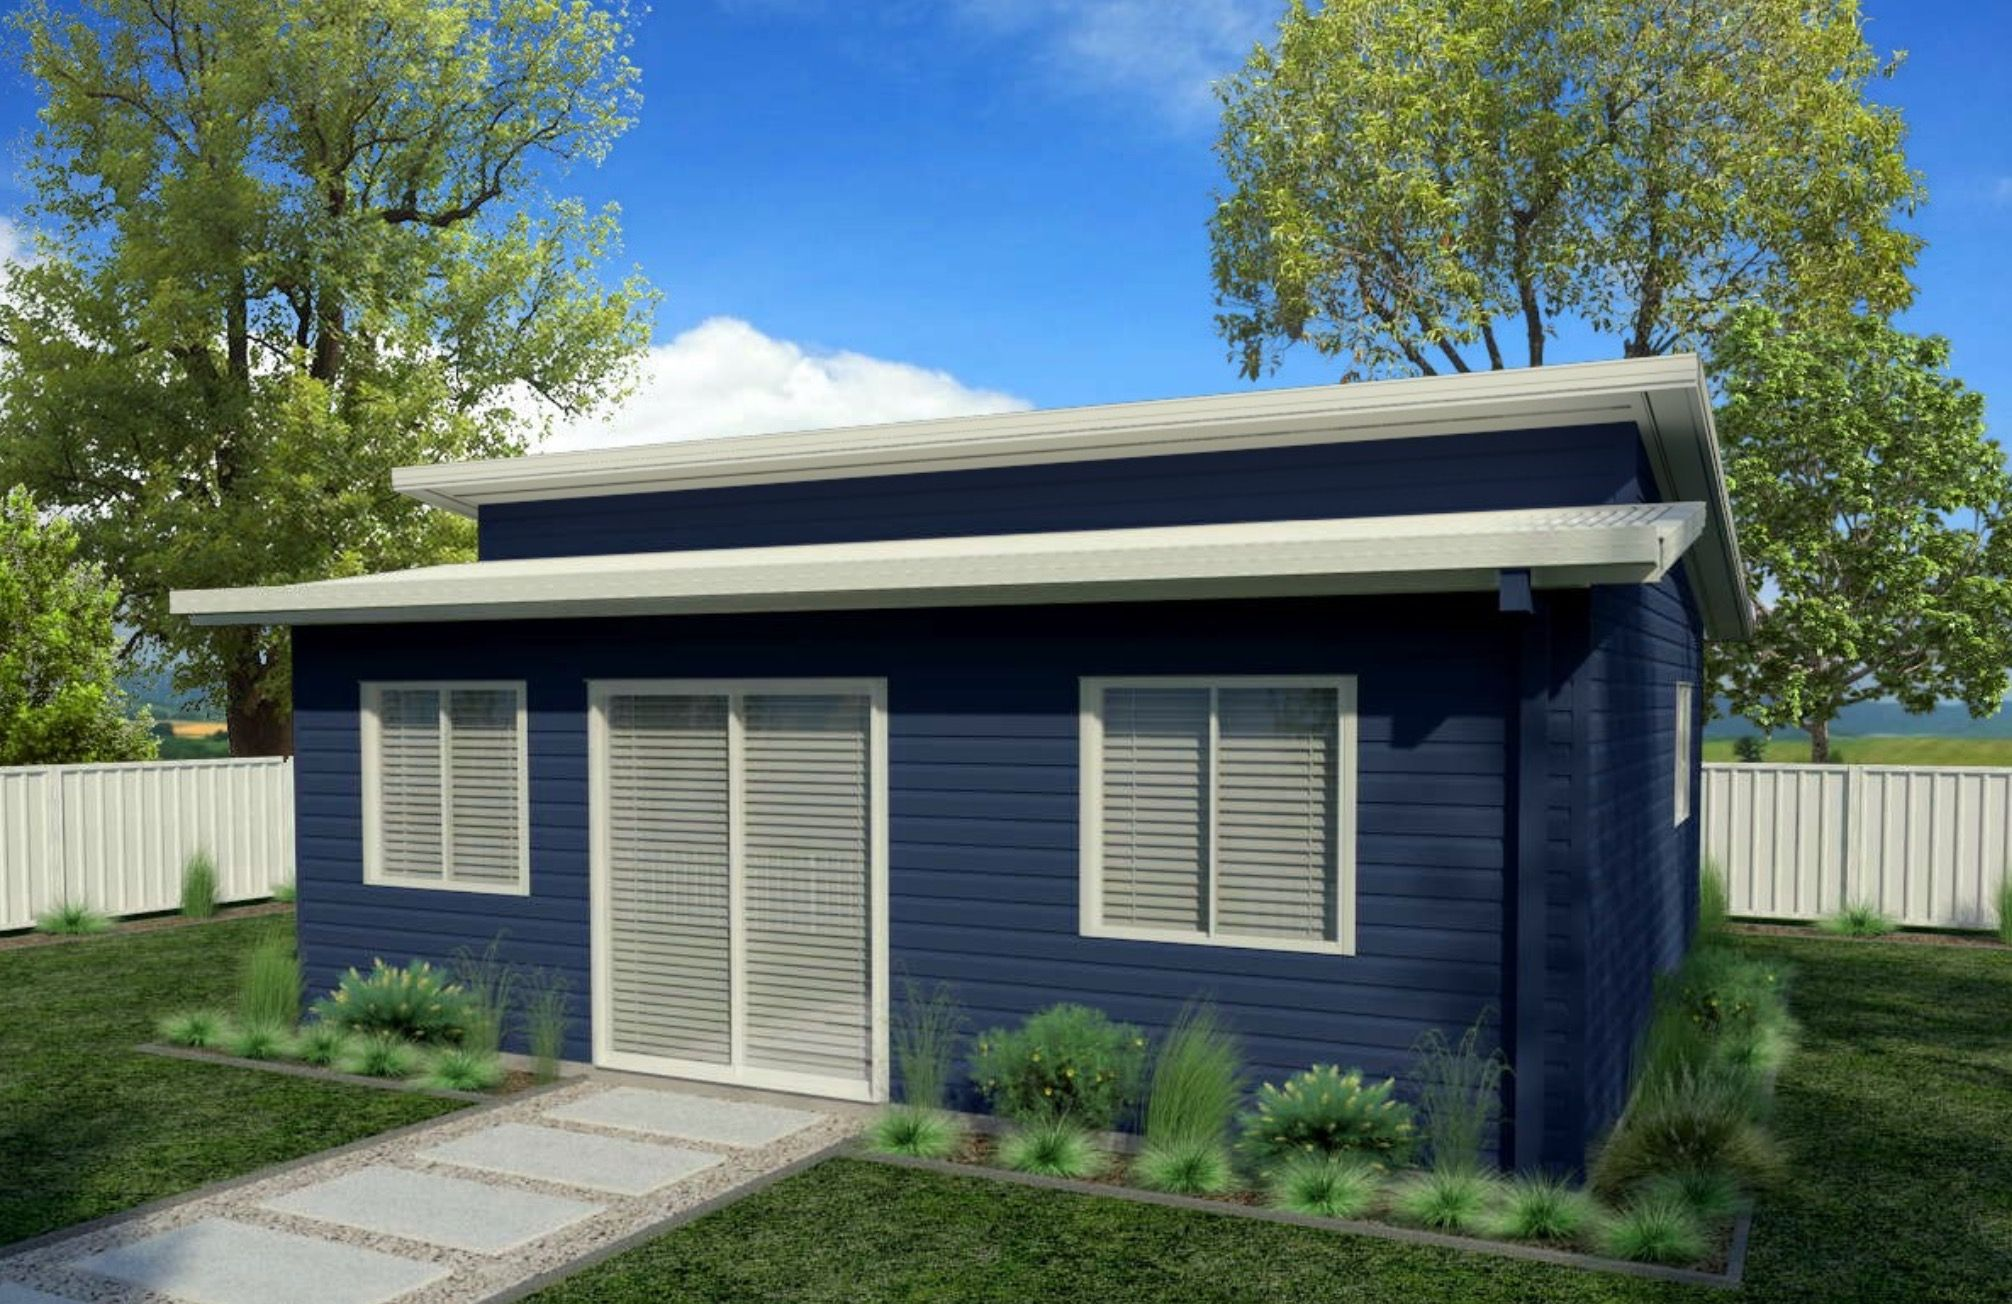 Our Pinnacle design features a double skillion roof, shown